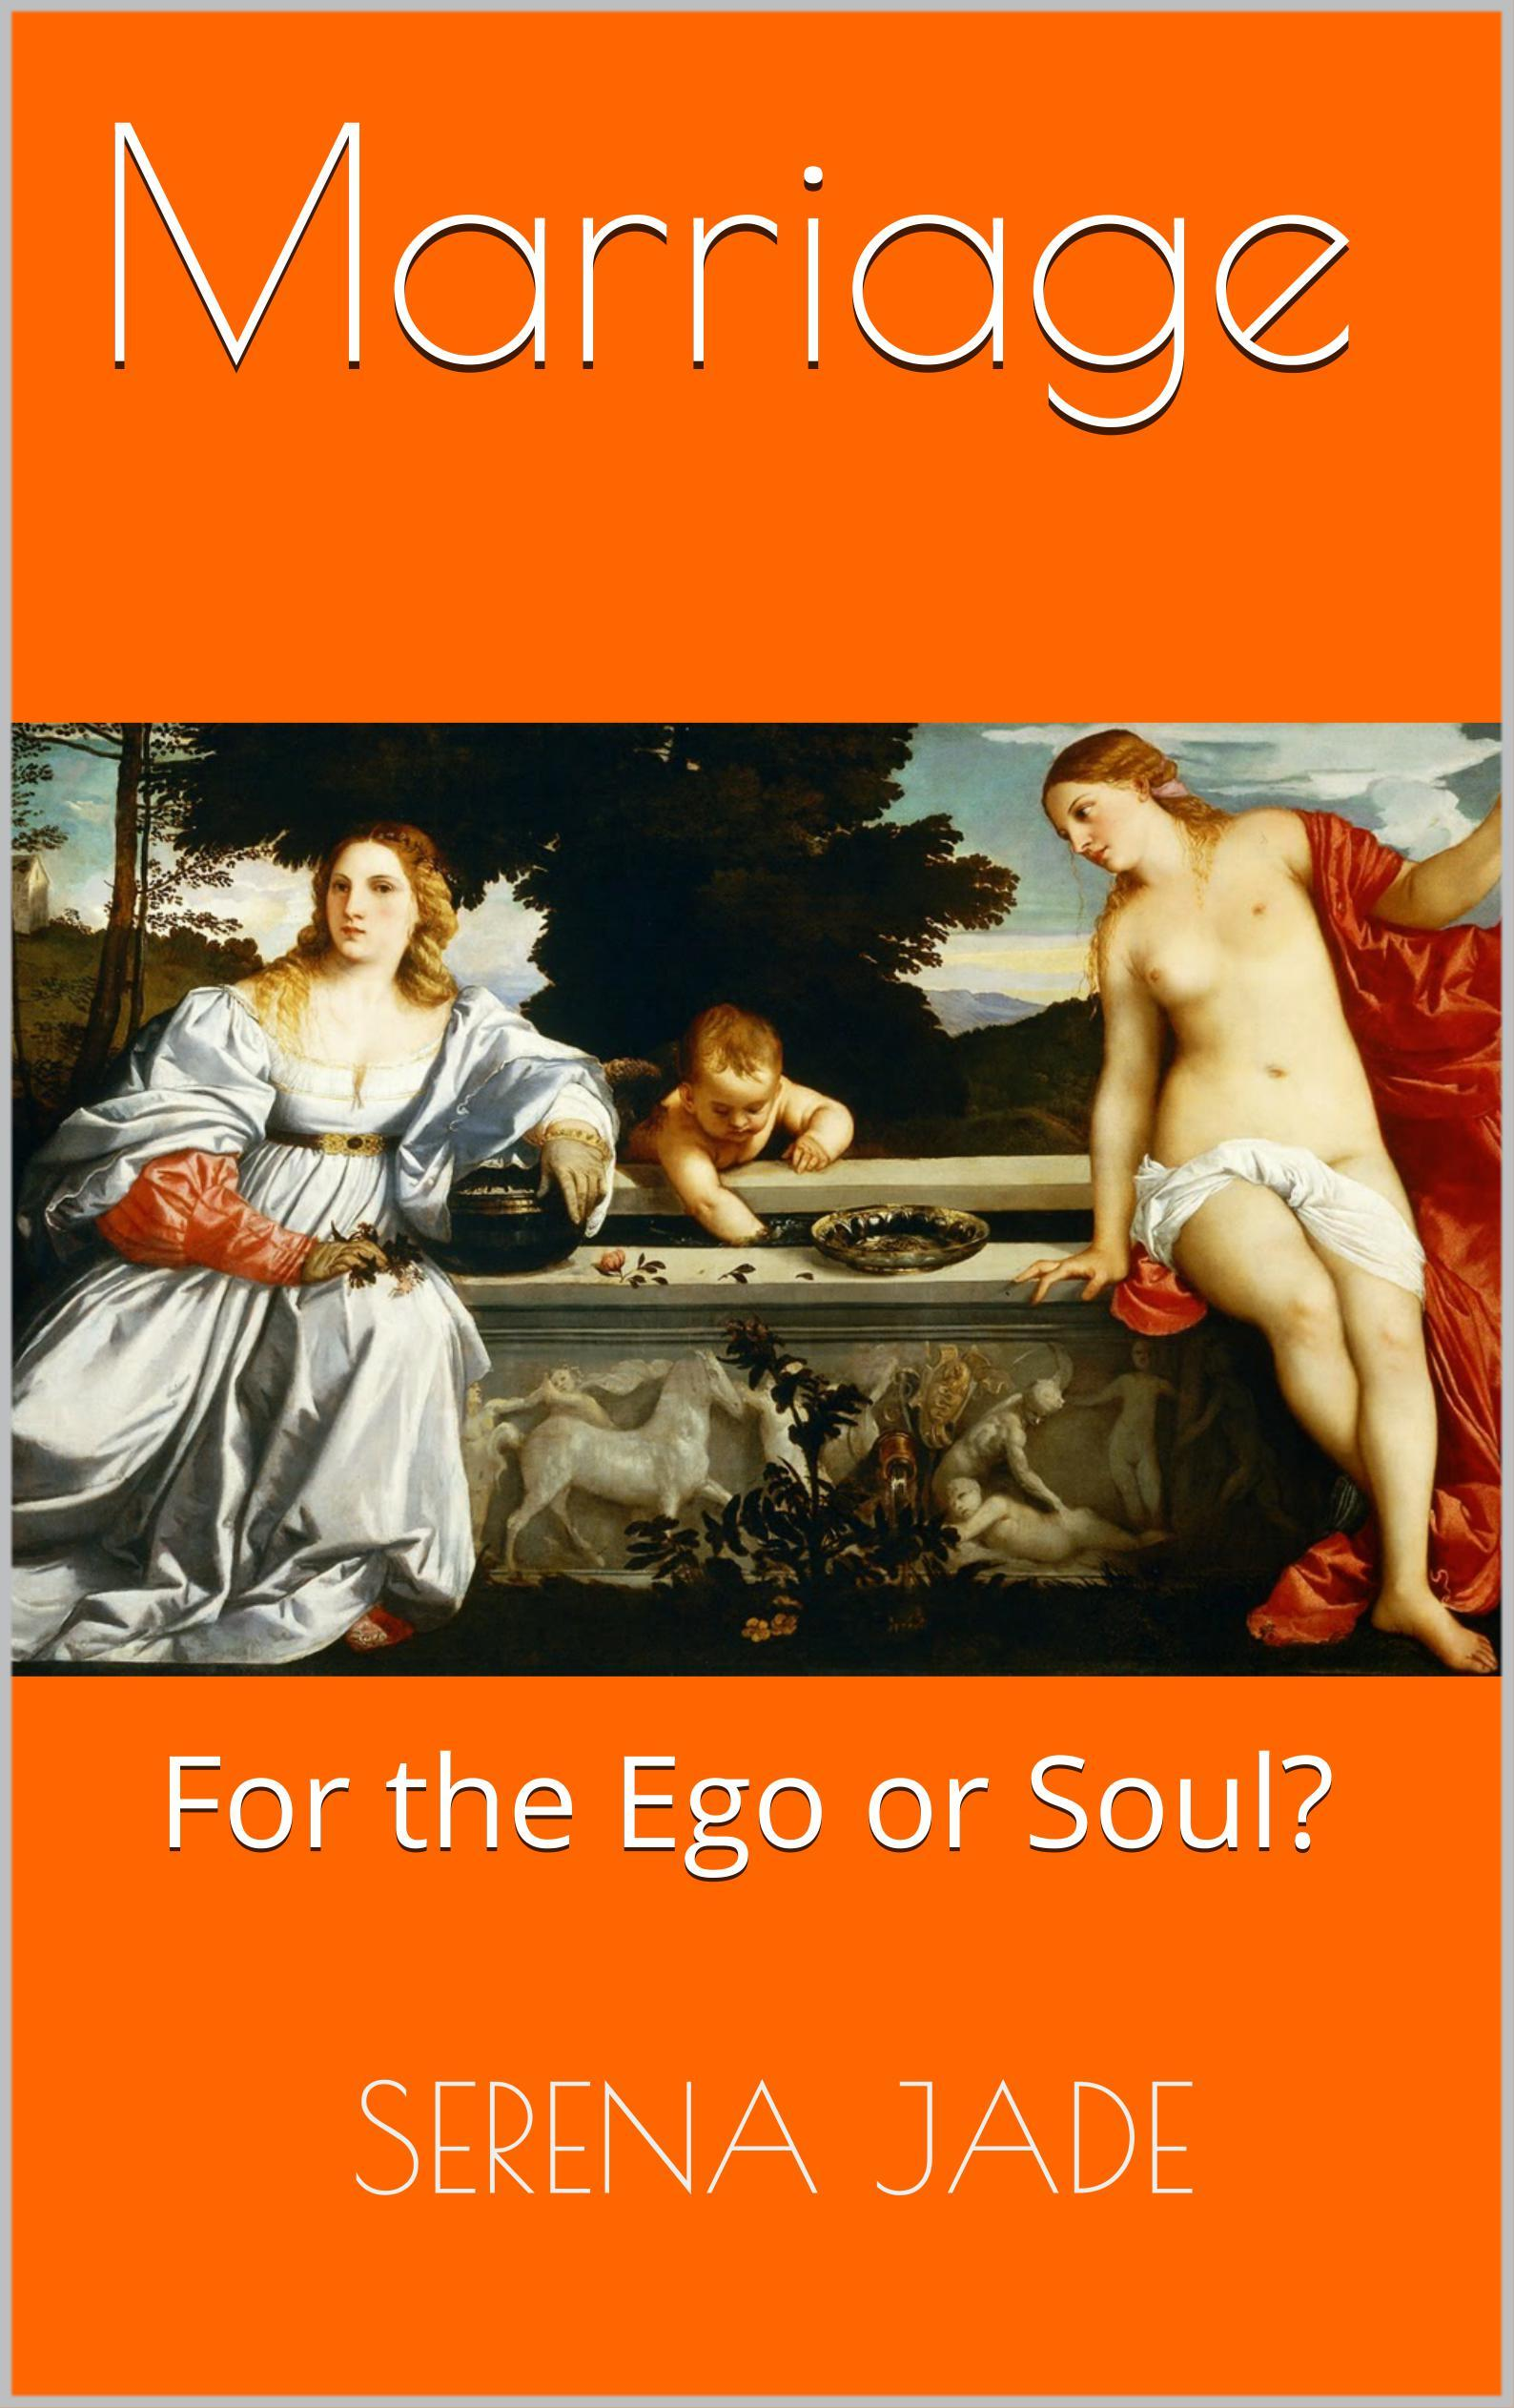 Marriage: For the Ego or Soul? Serena Jade